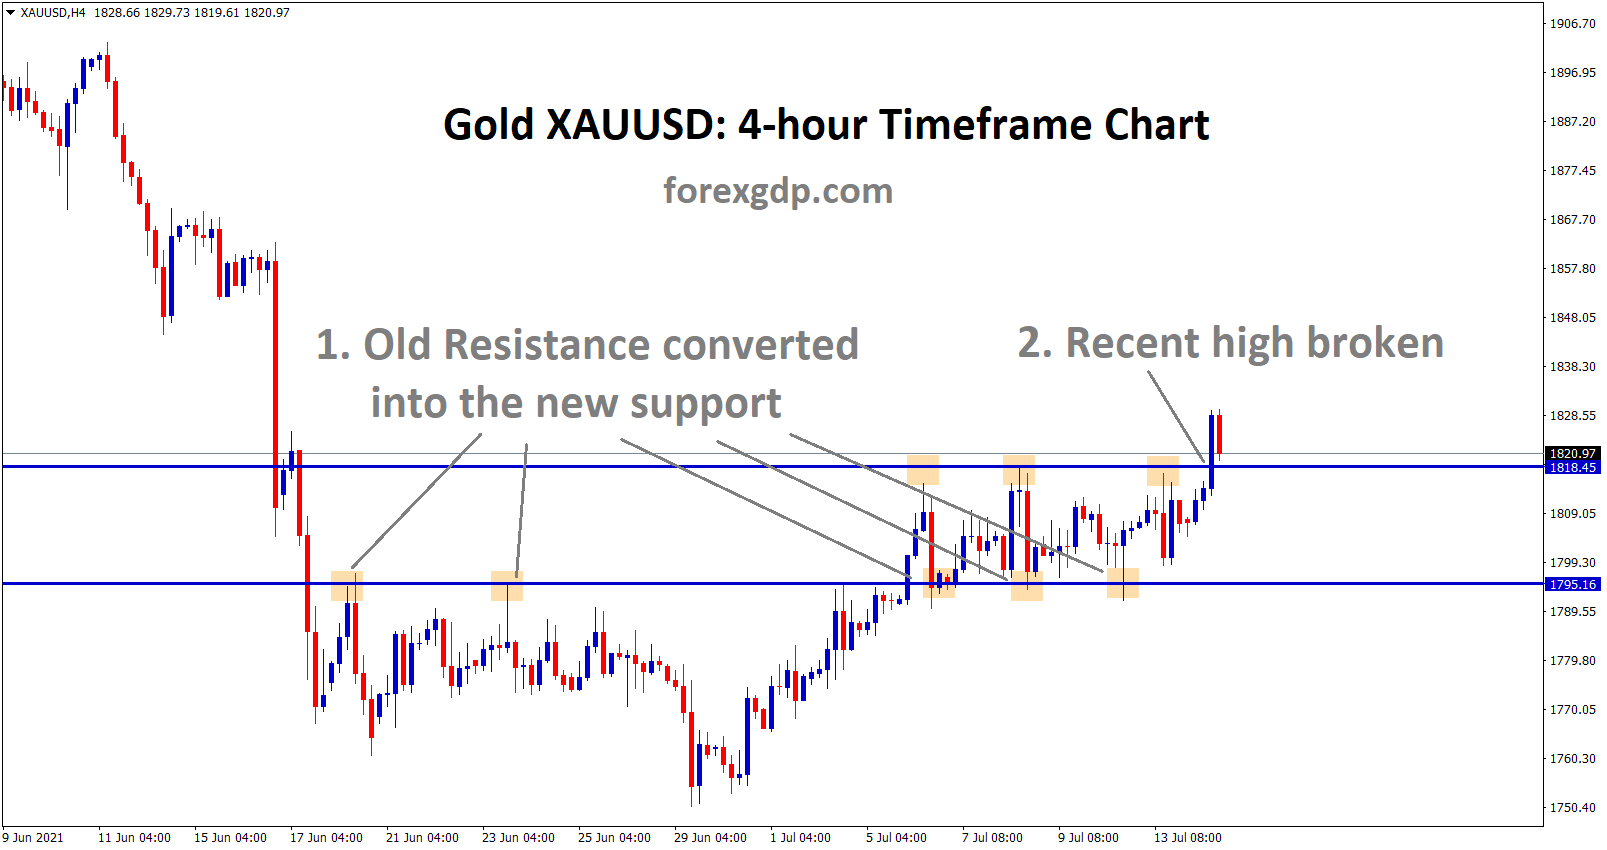 Gold XAUUSD old resistance converted into the new support and recent high was broken today.